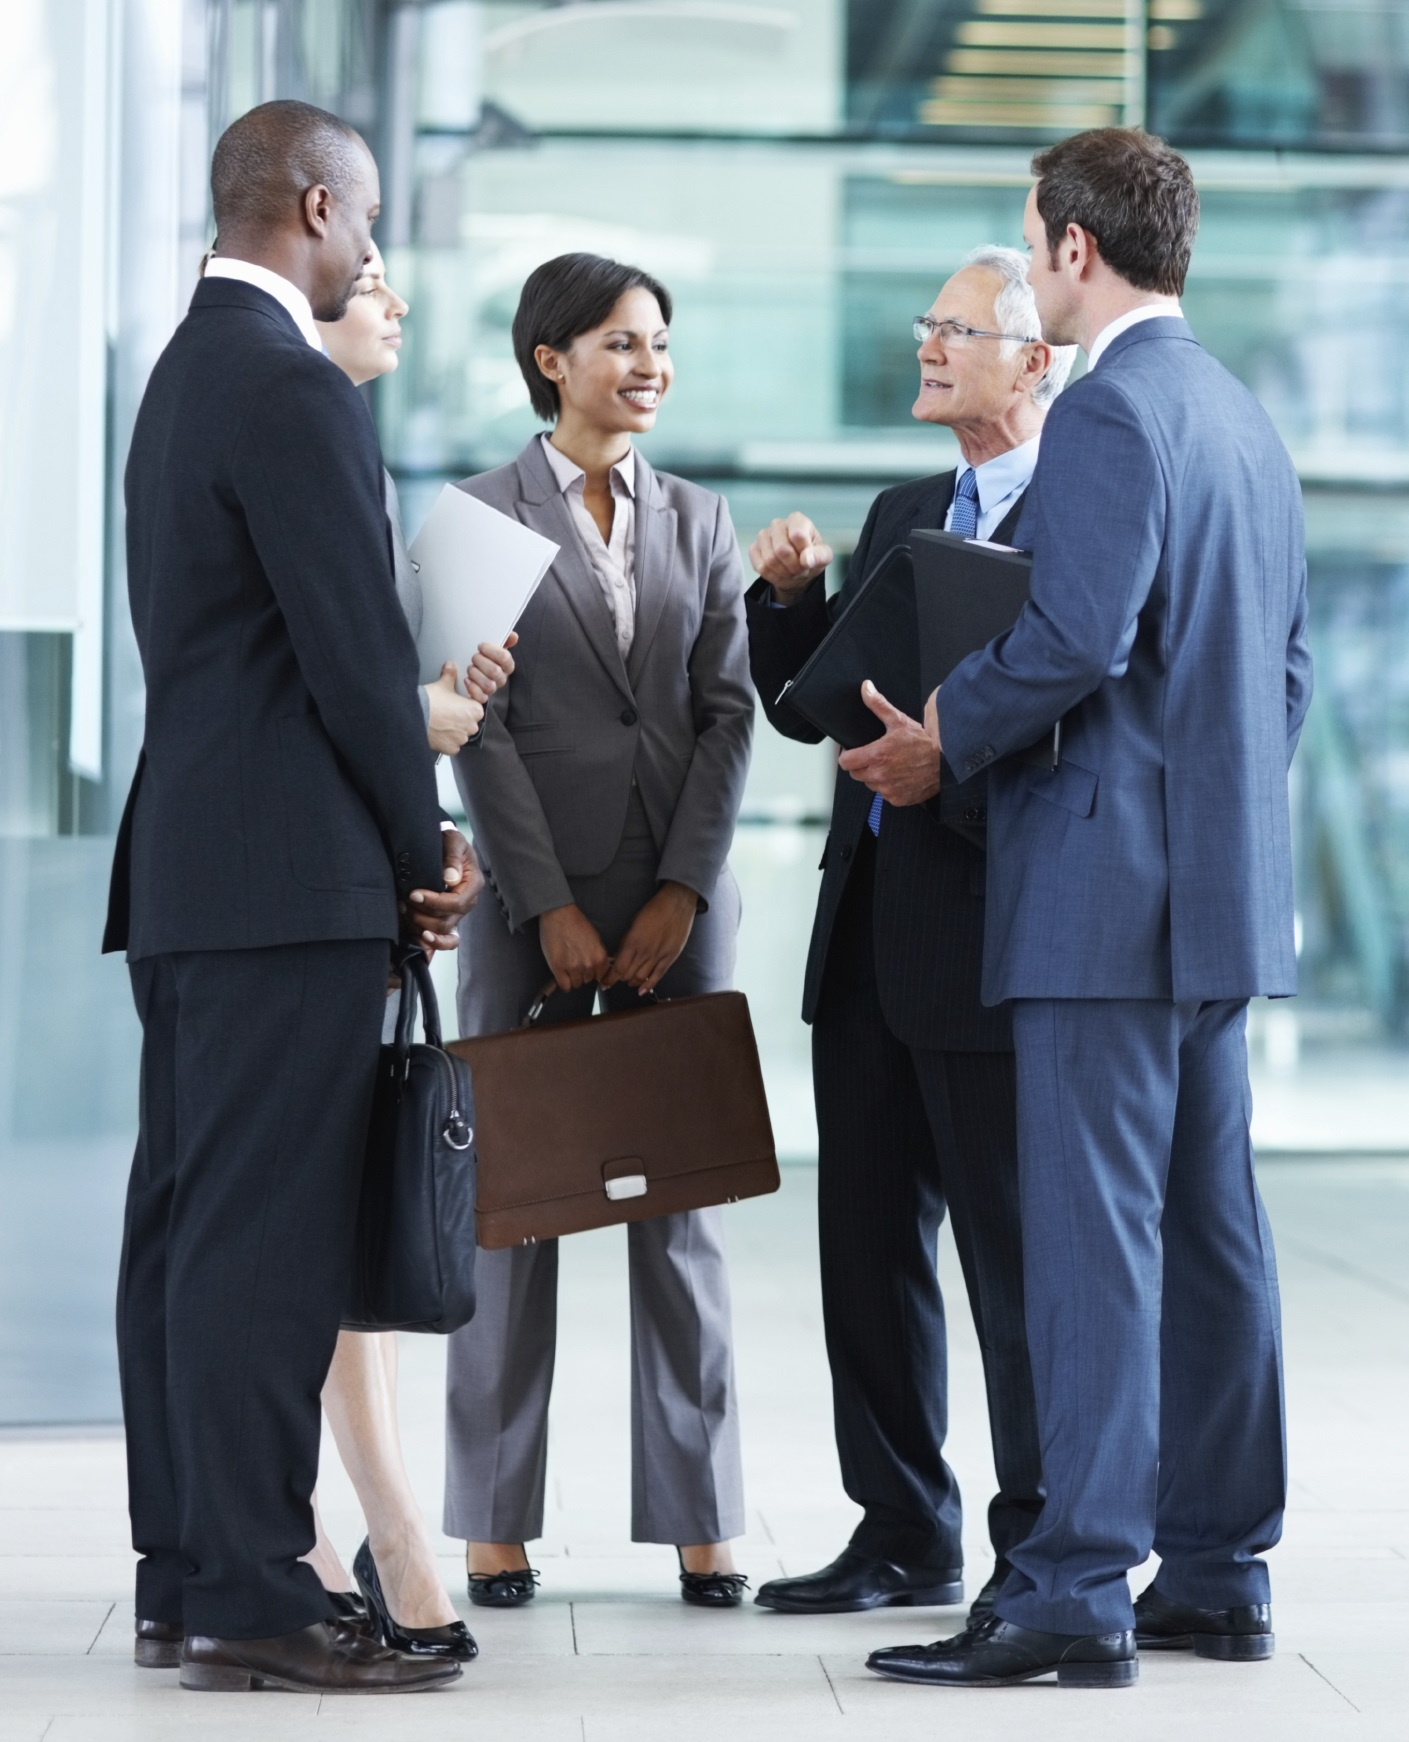 Corporate Industry Managed Services